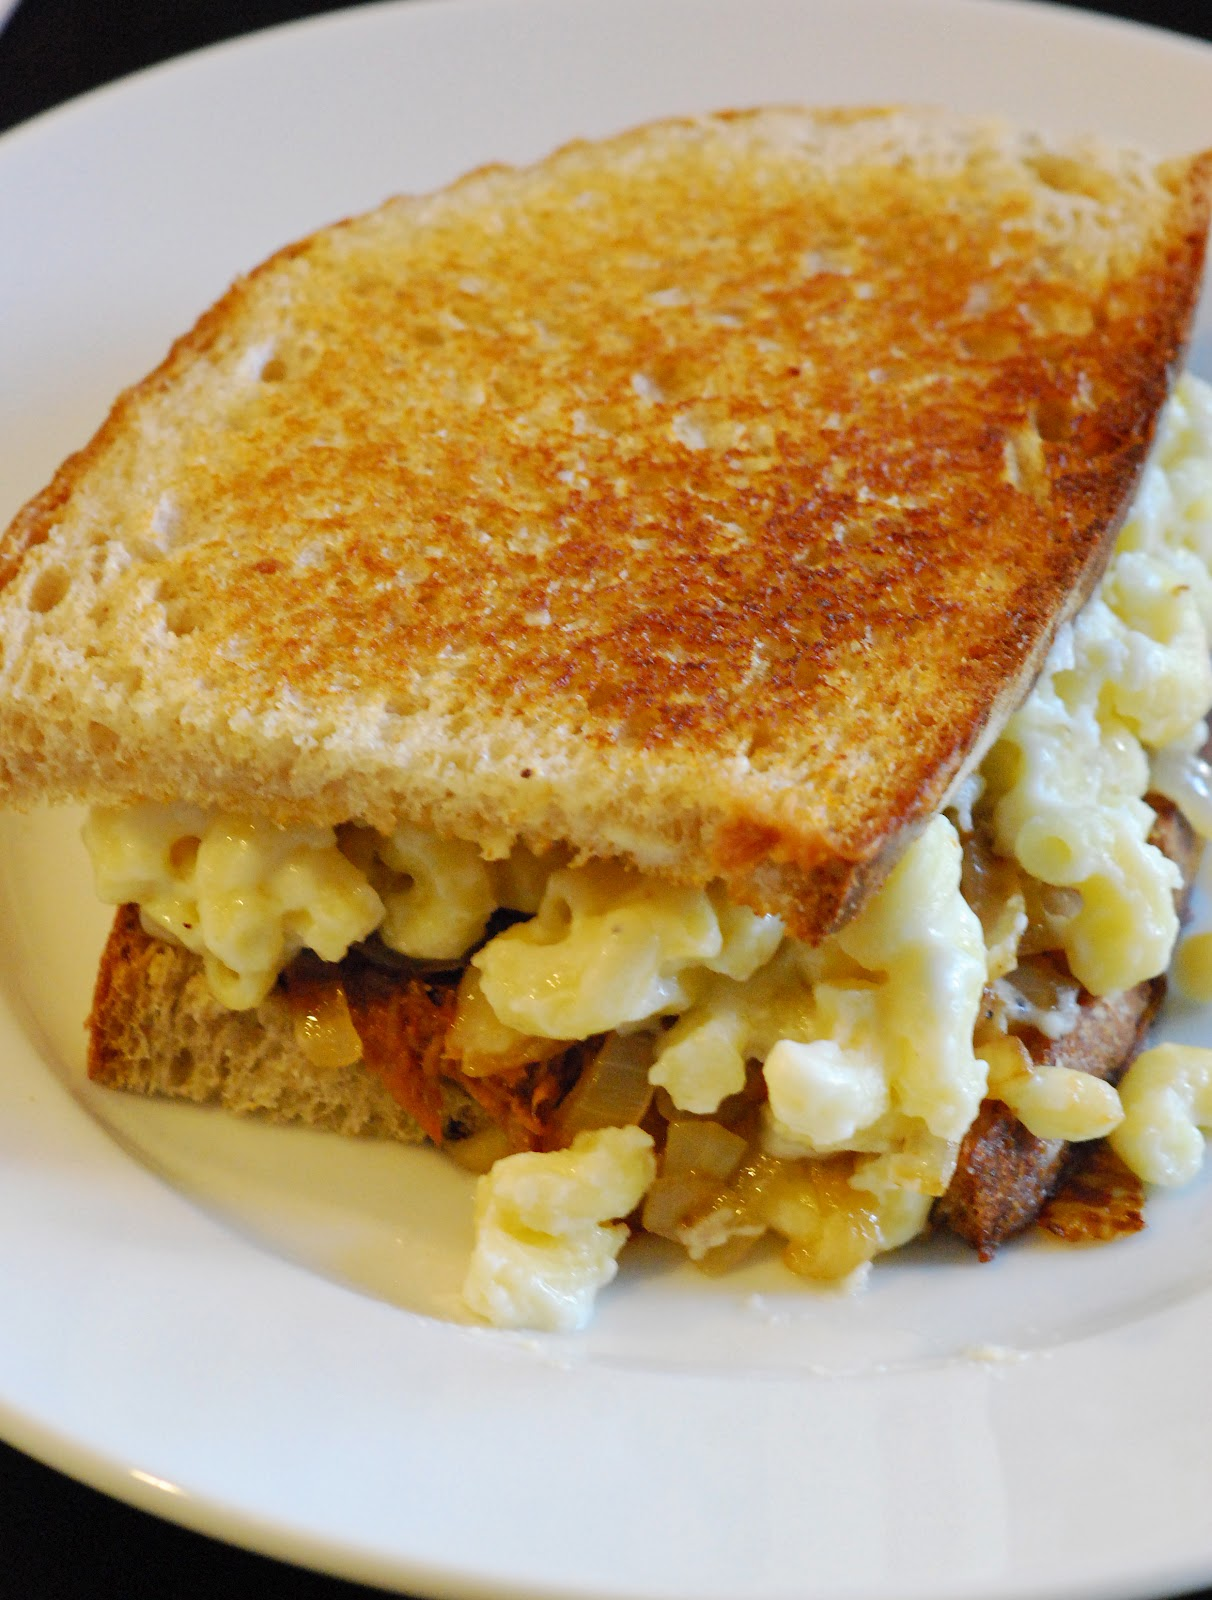 The Sweet Swiper: The Search for the Ultimate Grilled Cheese Sandwich